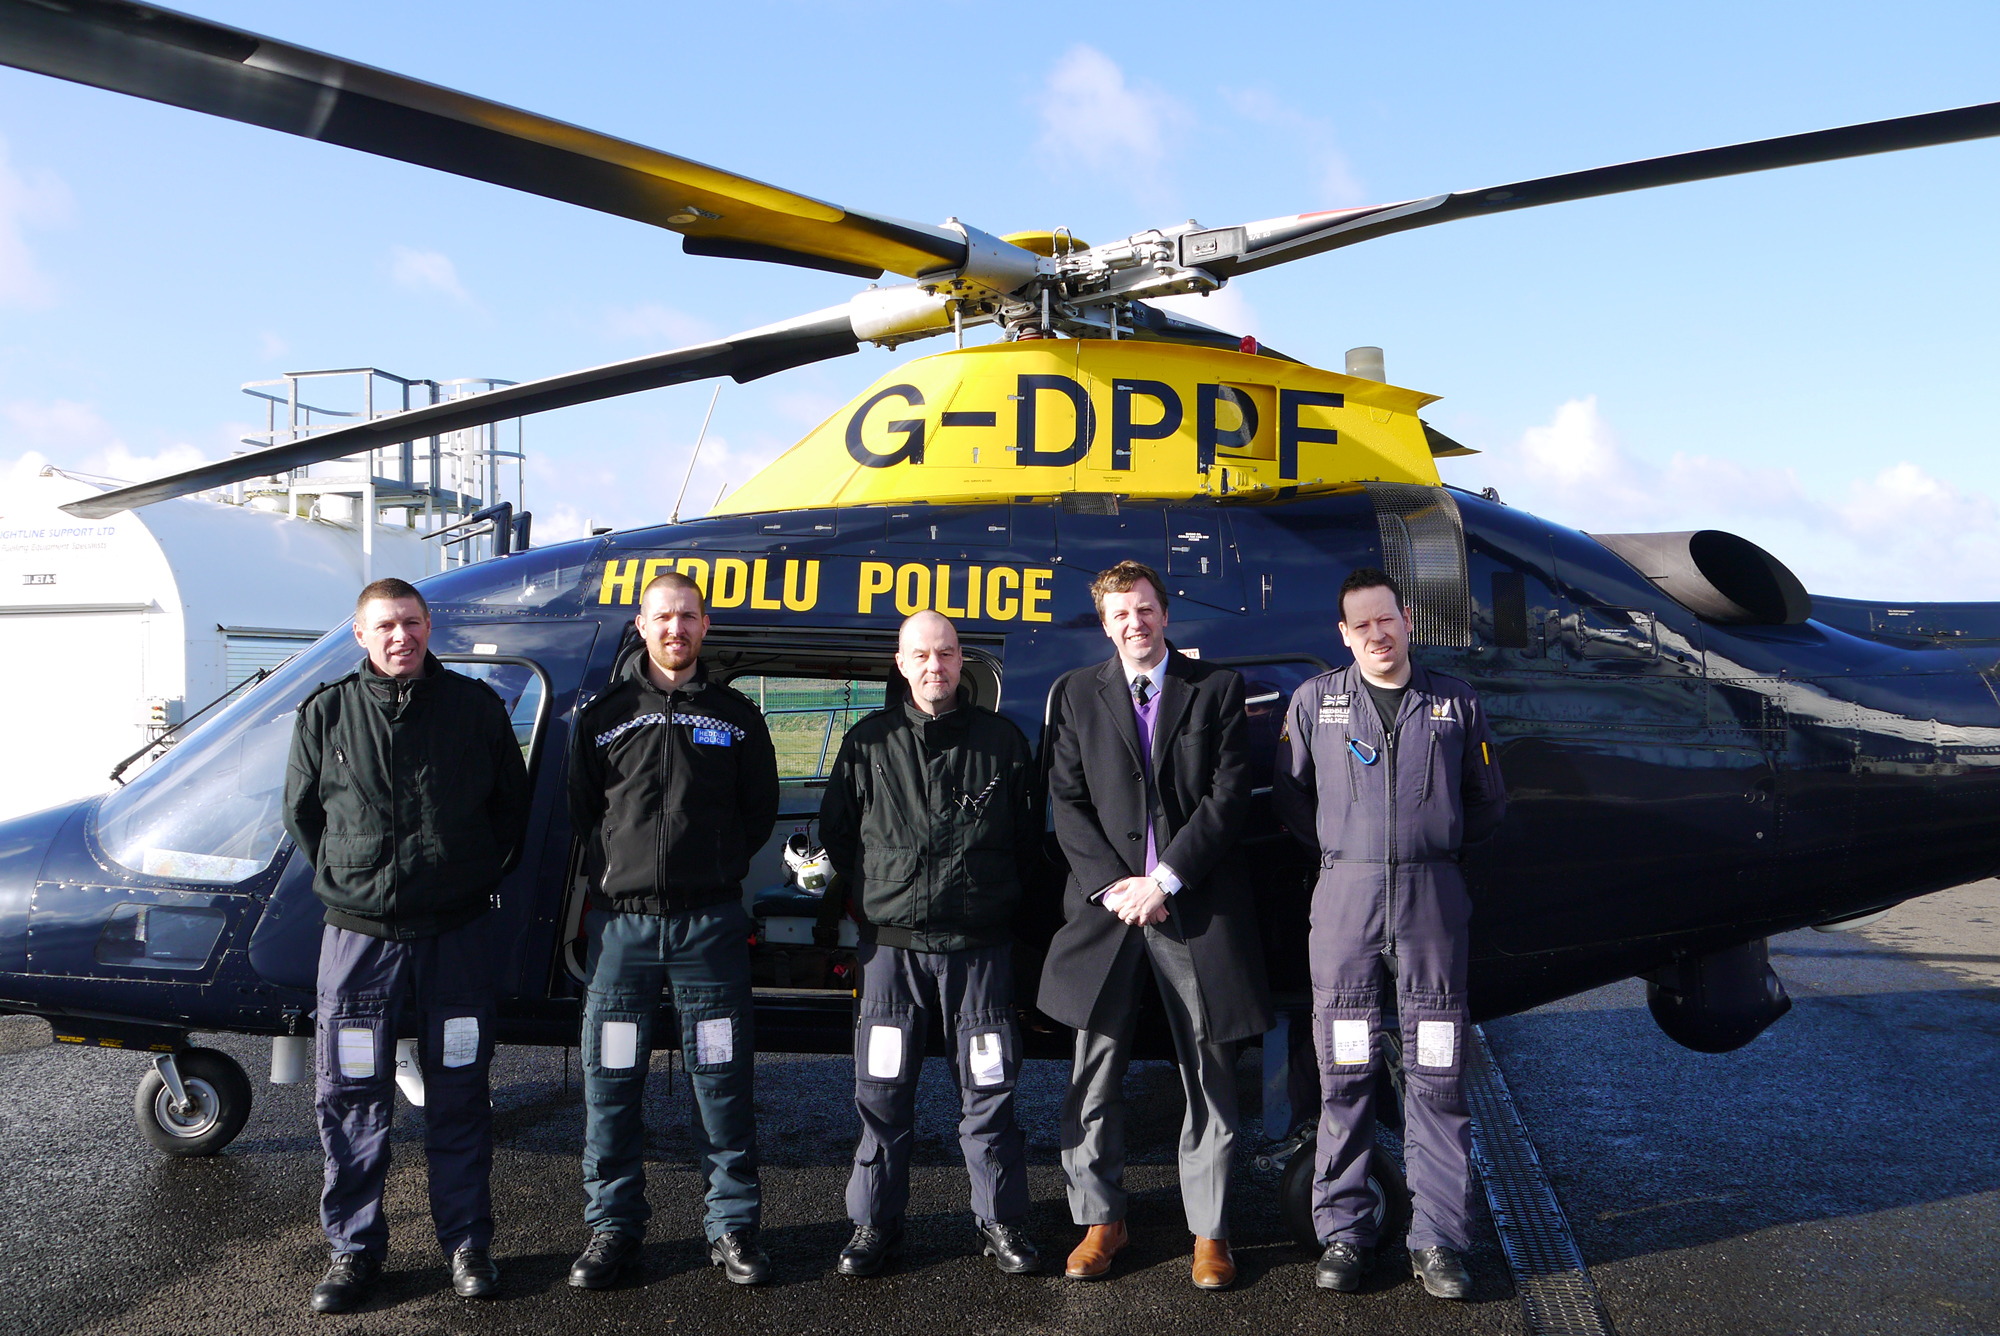 Calls for action from MP as response time for police helicopter doubles